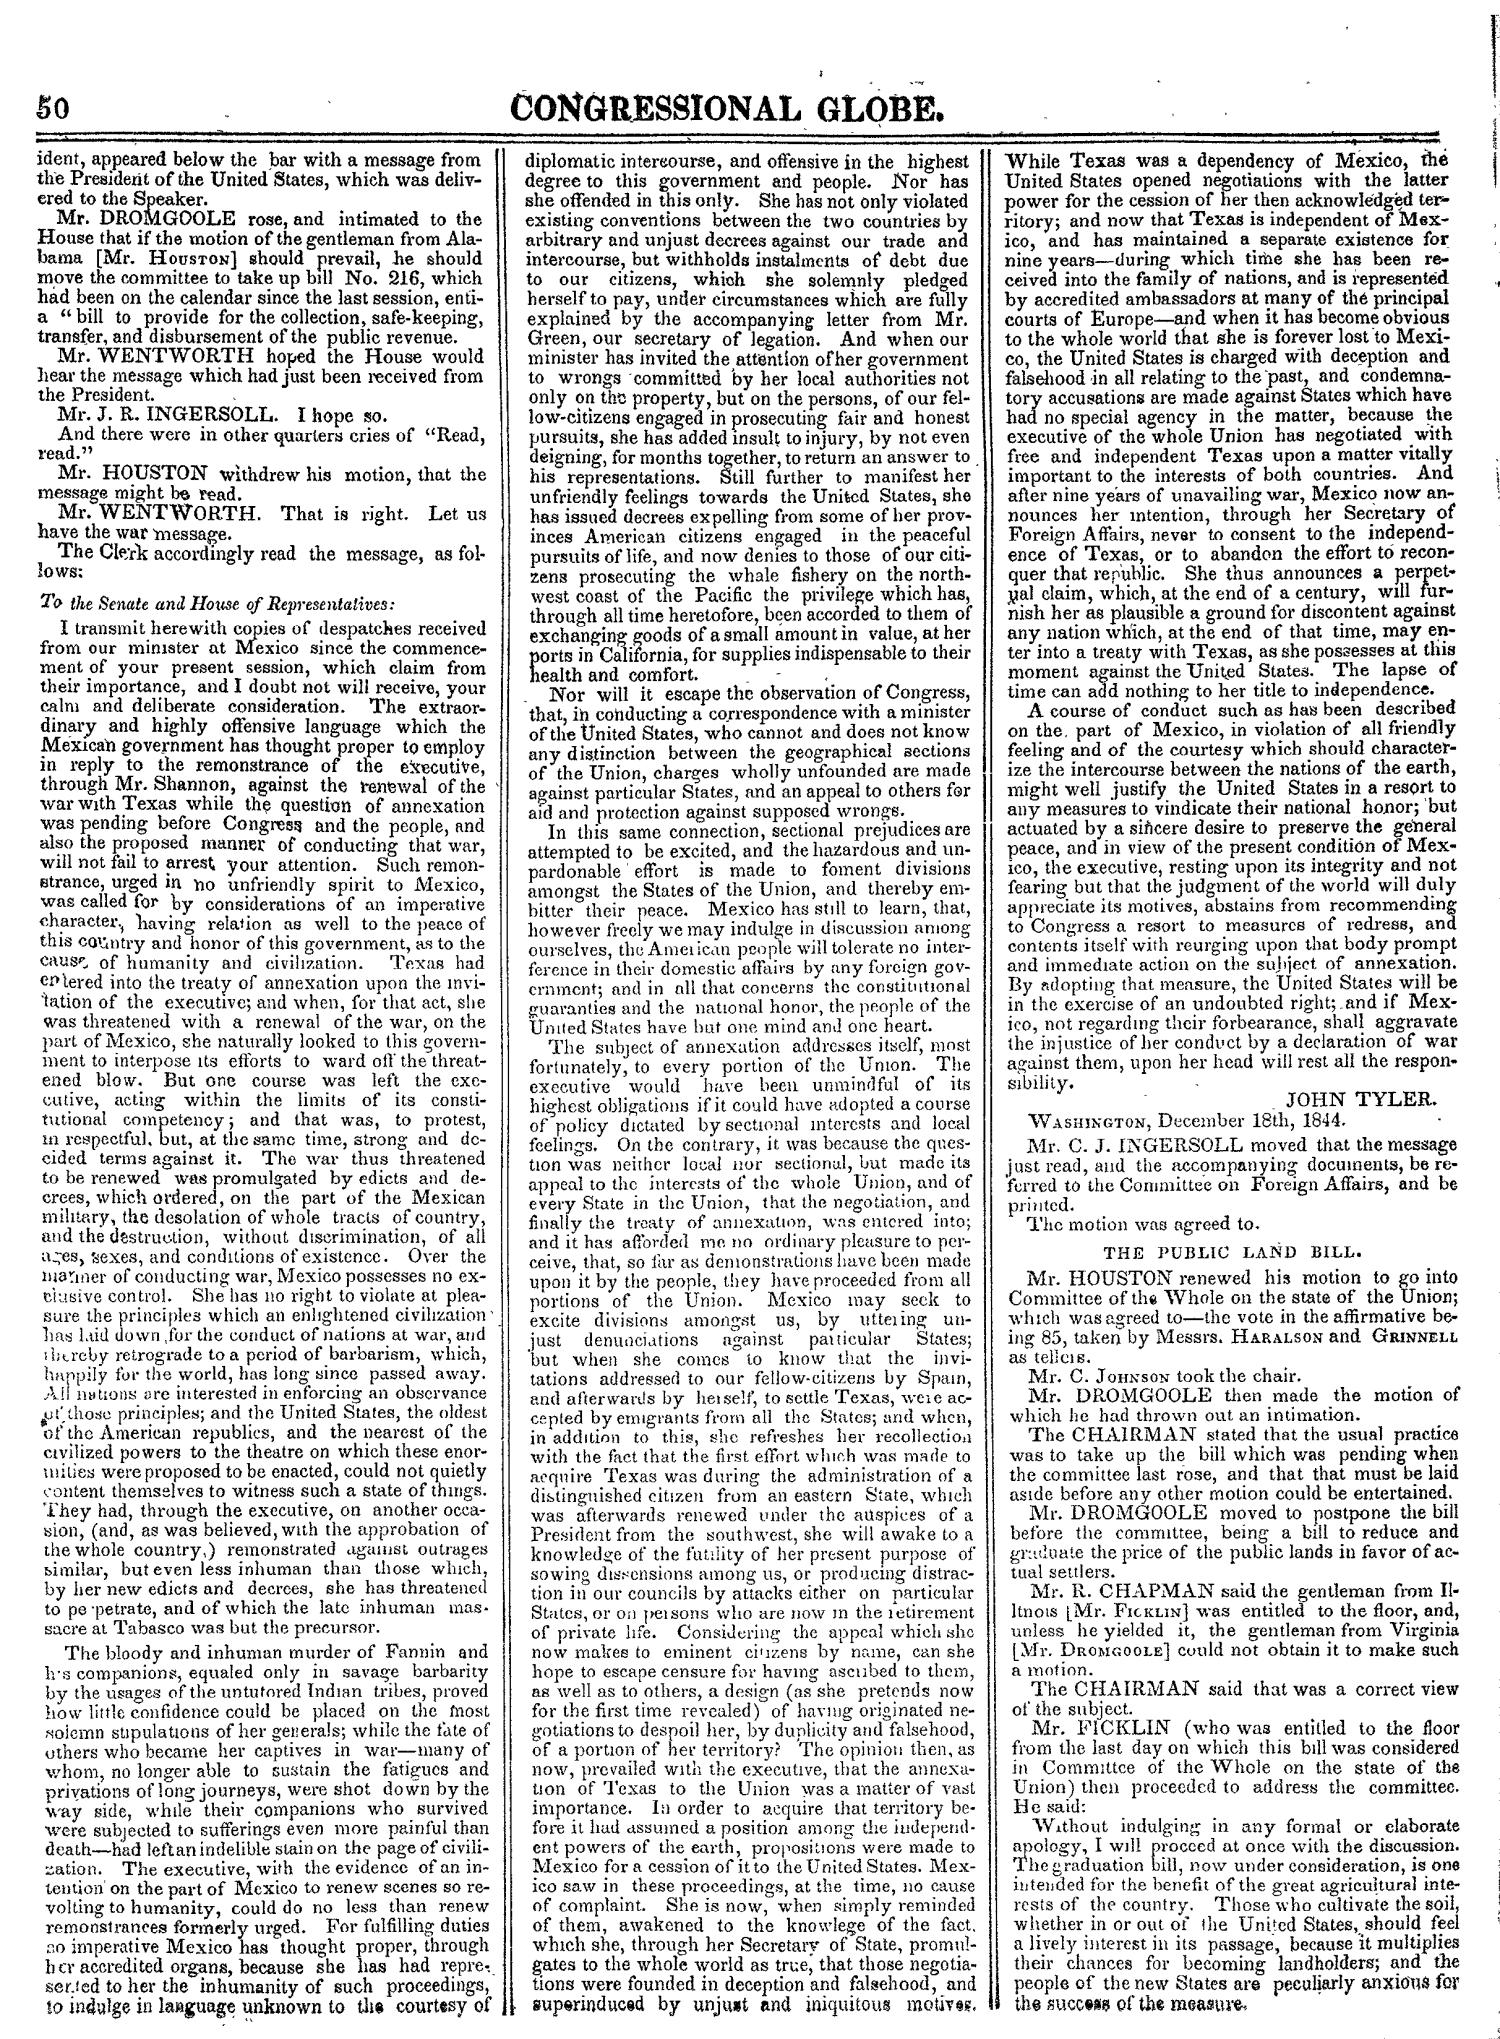 The Congressional Globe, Volume 14: Twenty-Eighth Congress, Second Session                                                                                                      50